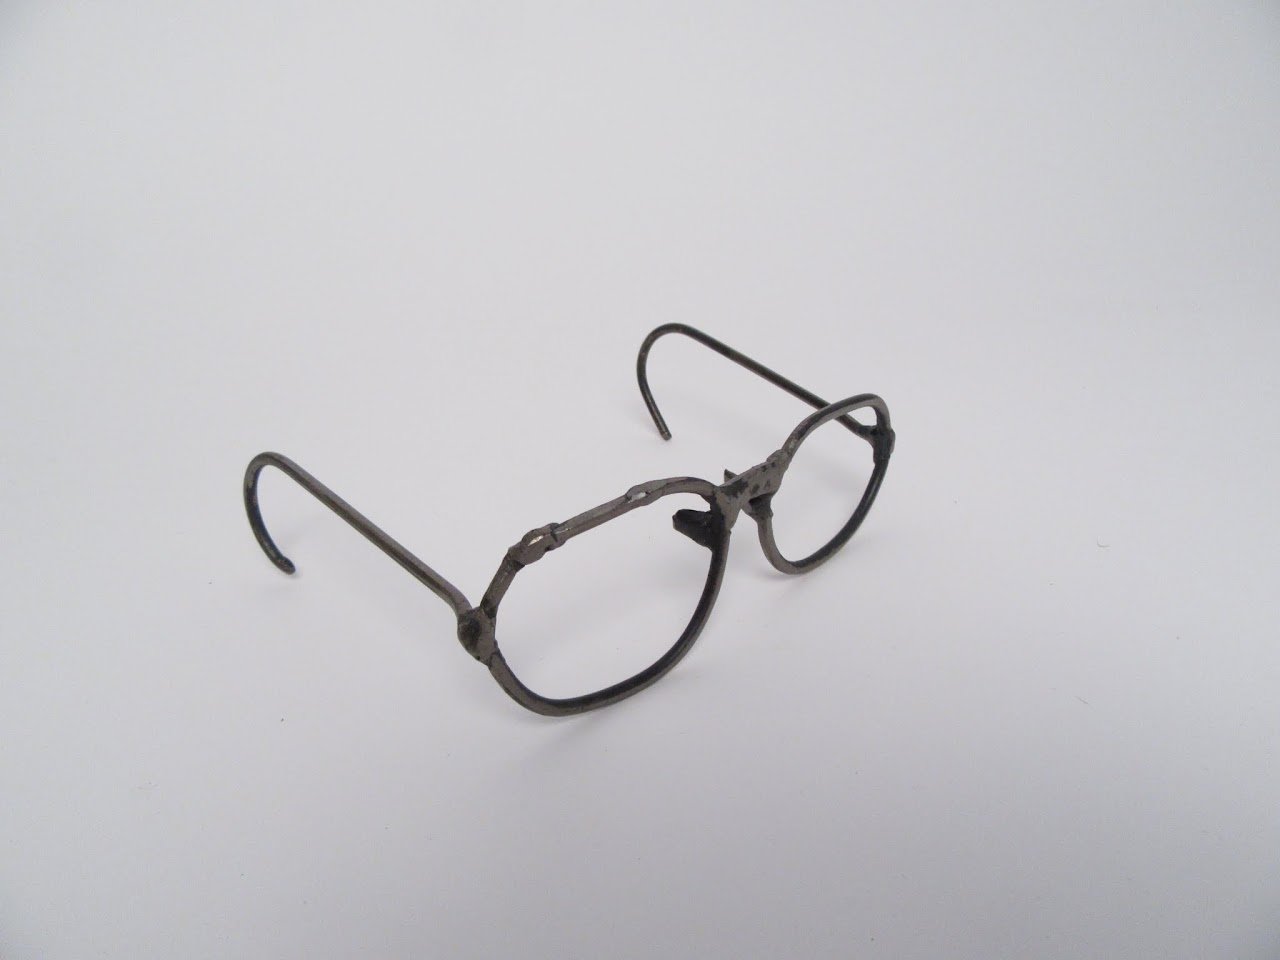 Unsigned Metal Sculpture of Glasses